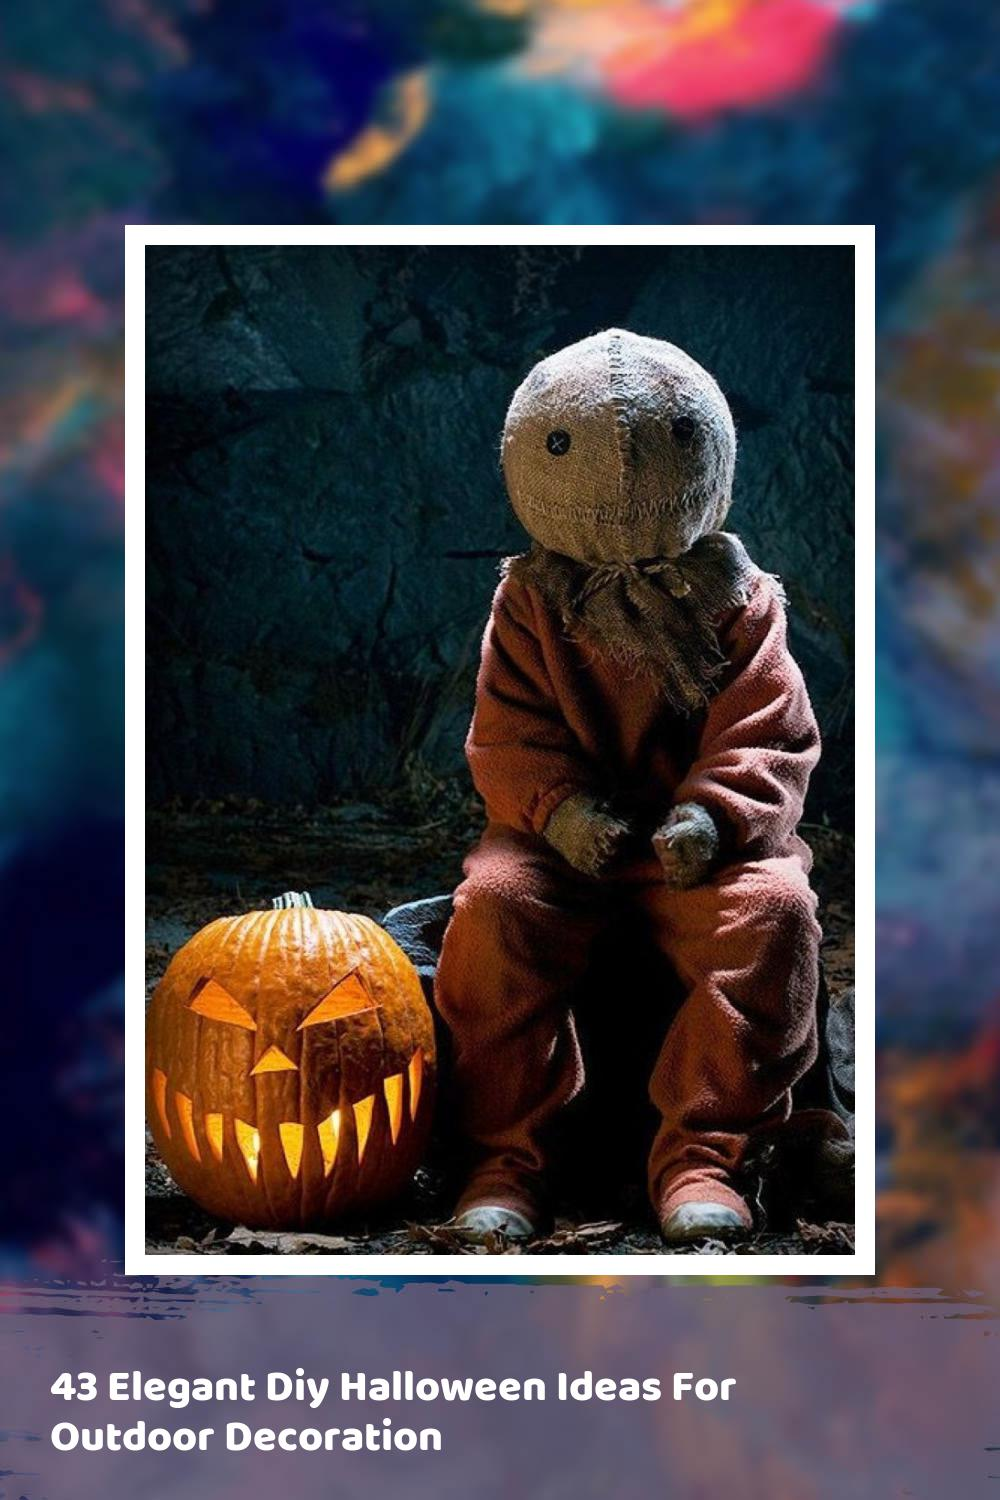 43 Elegant Diy Halloween Ideas For Outdoor Decoration 1